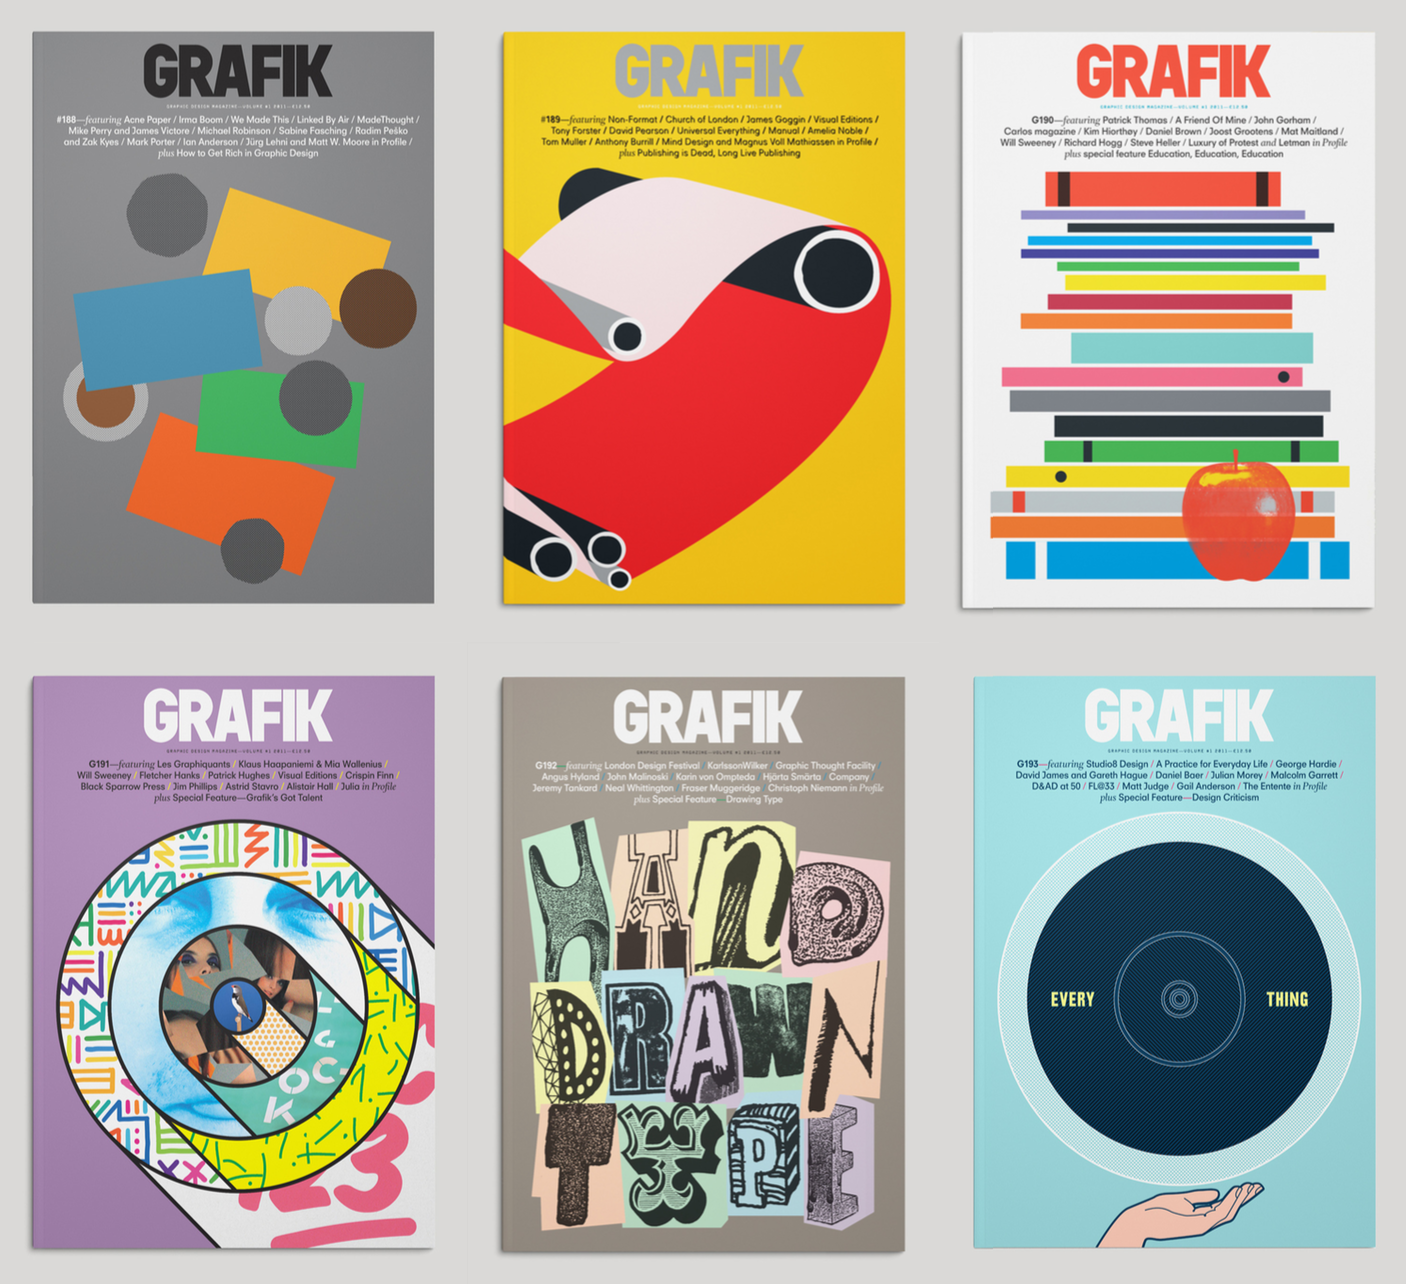 A selection of issues of Grafik magazine to which I contributed between 2011-12.